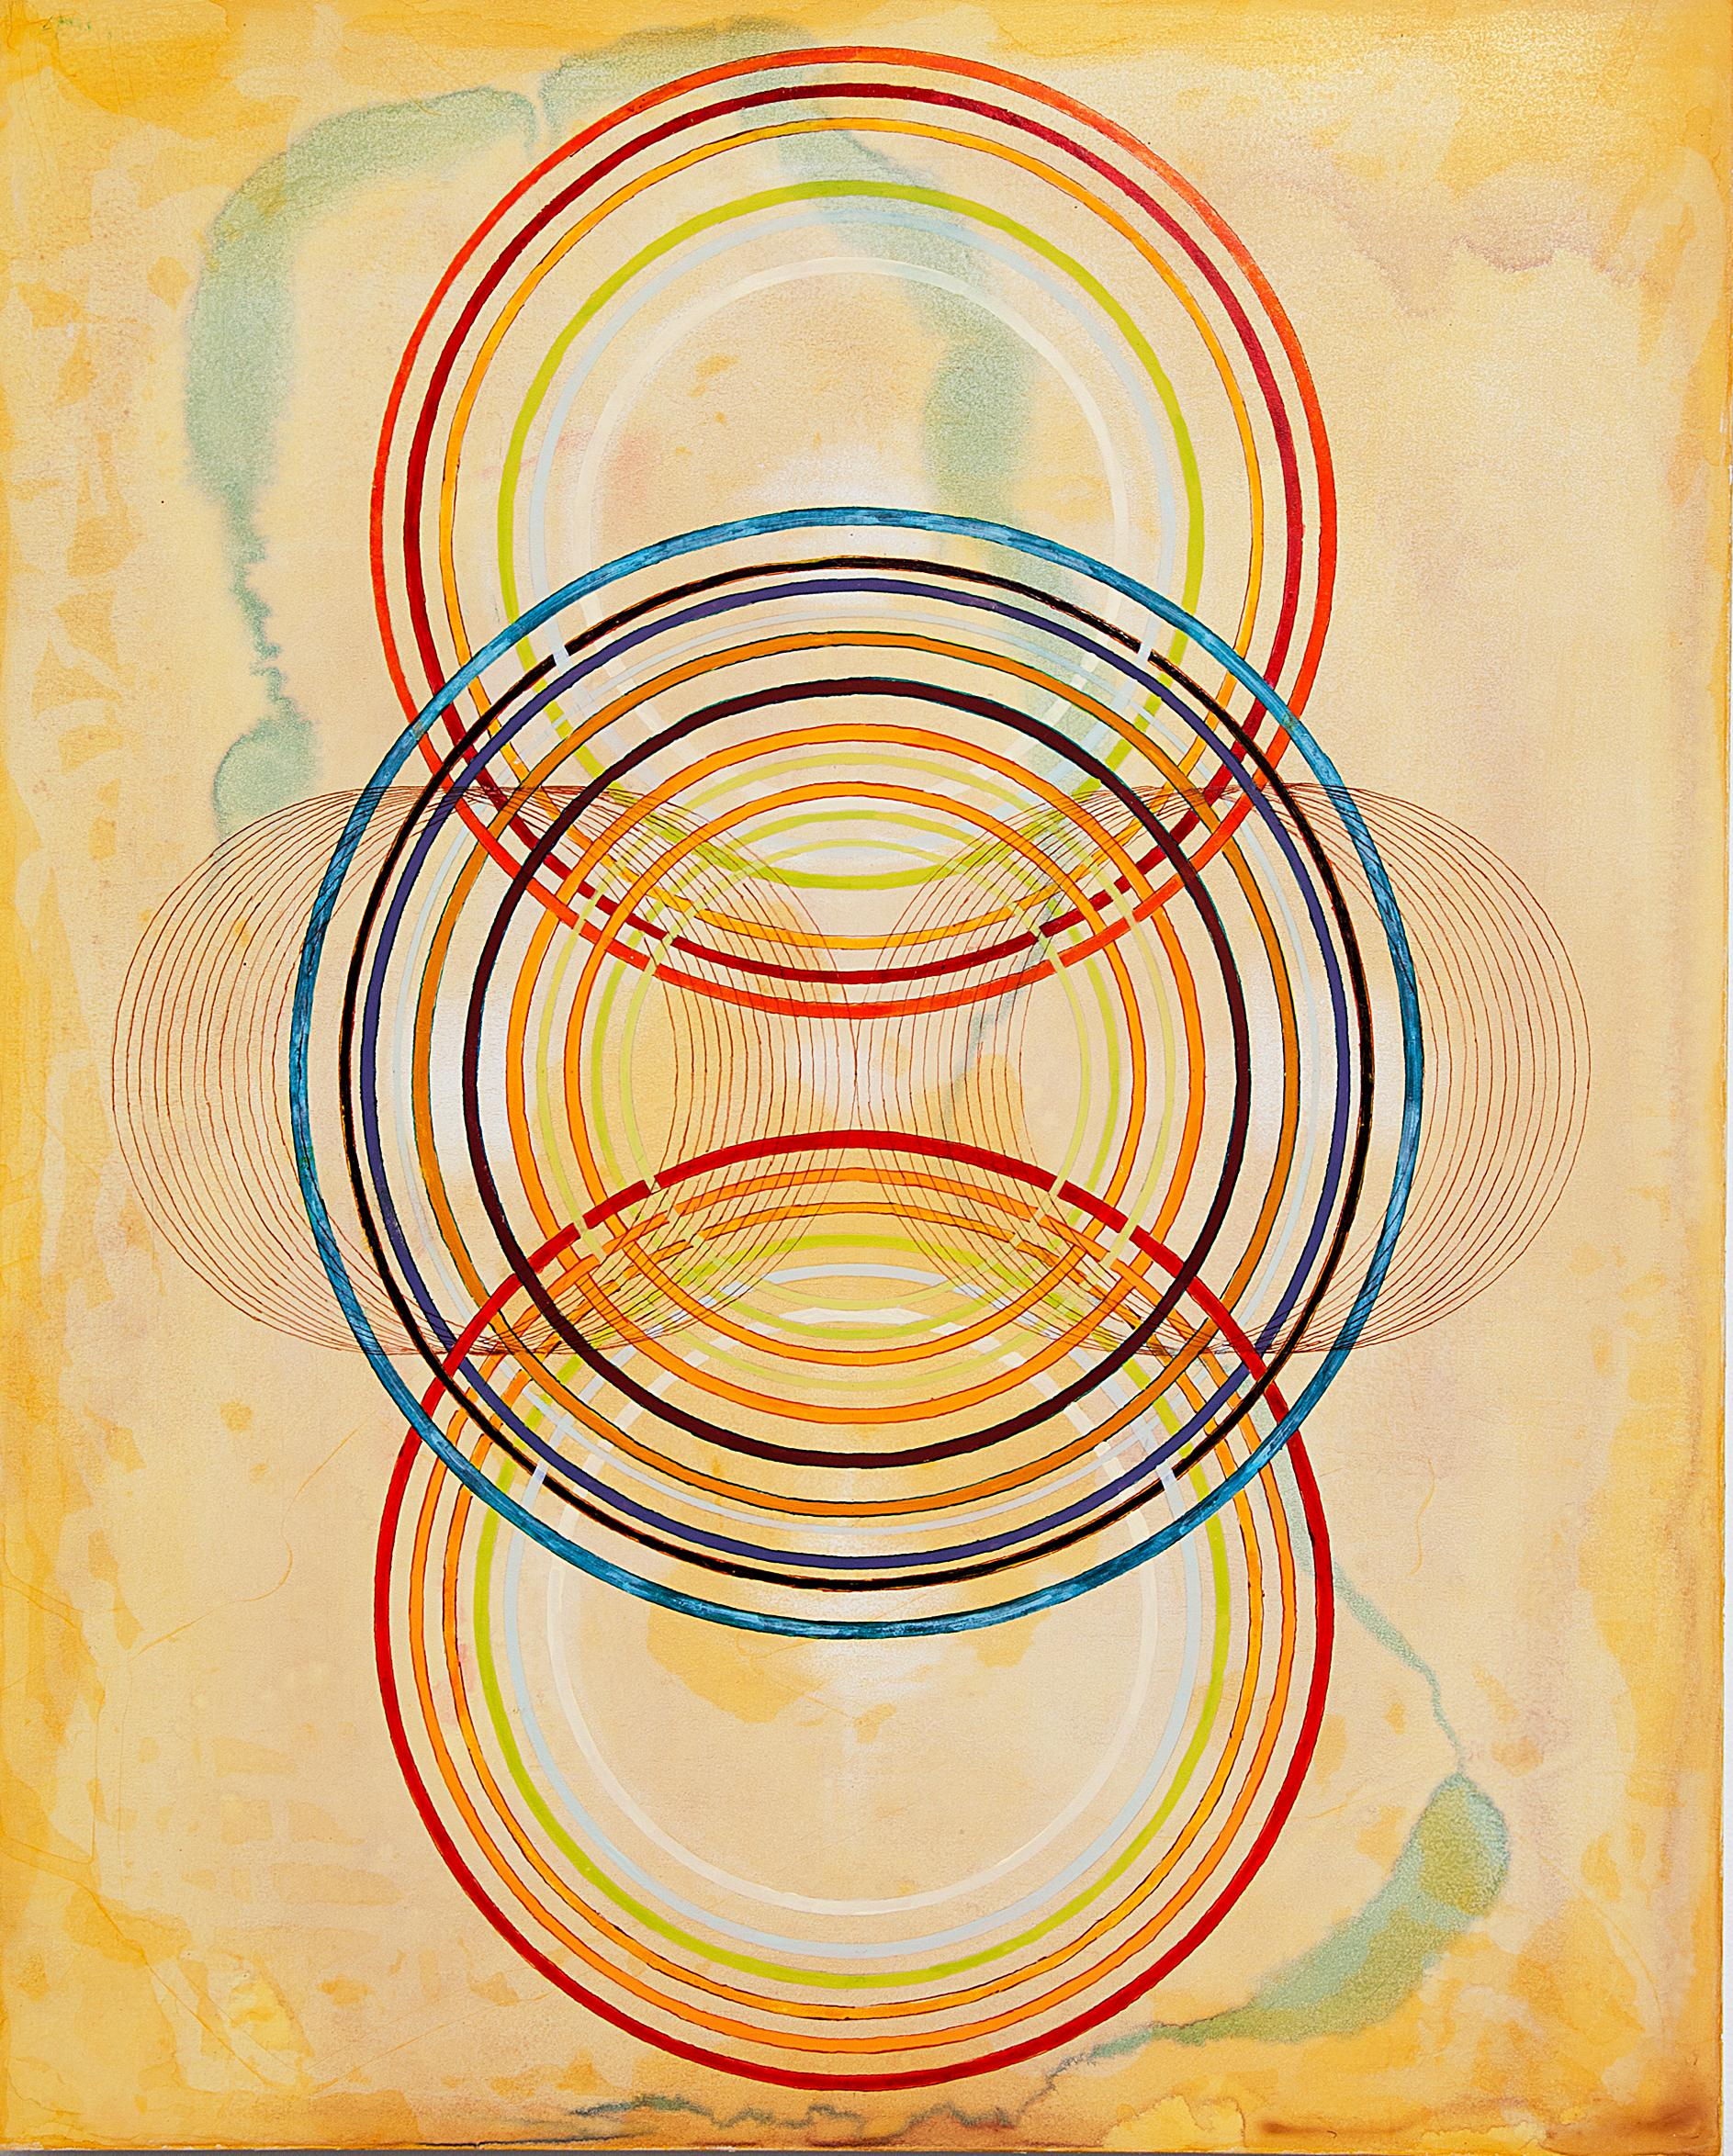 Tayo Heuser, Accretion Disk, 2016, ink on wood, Geometric Abstraction, Meditate